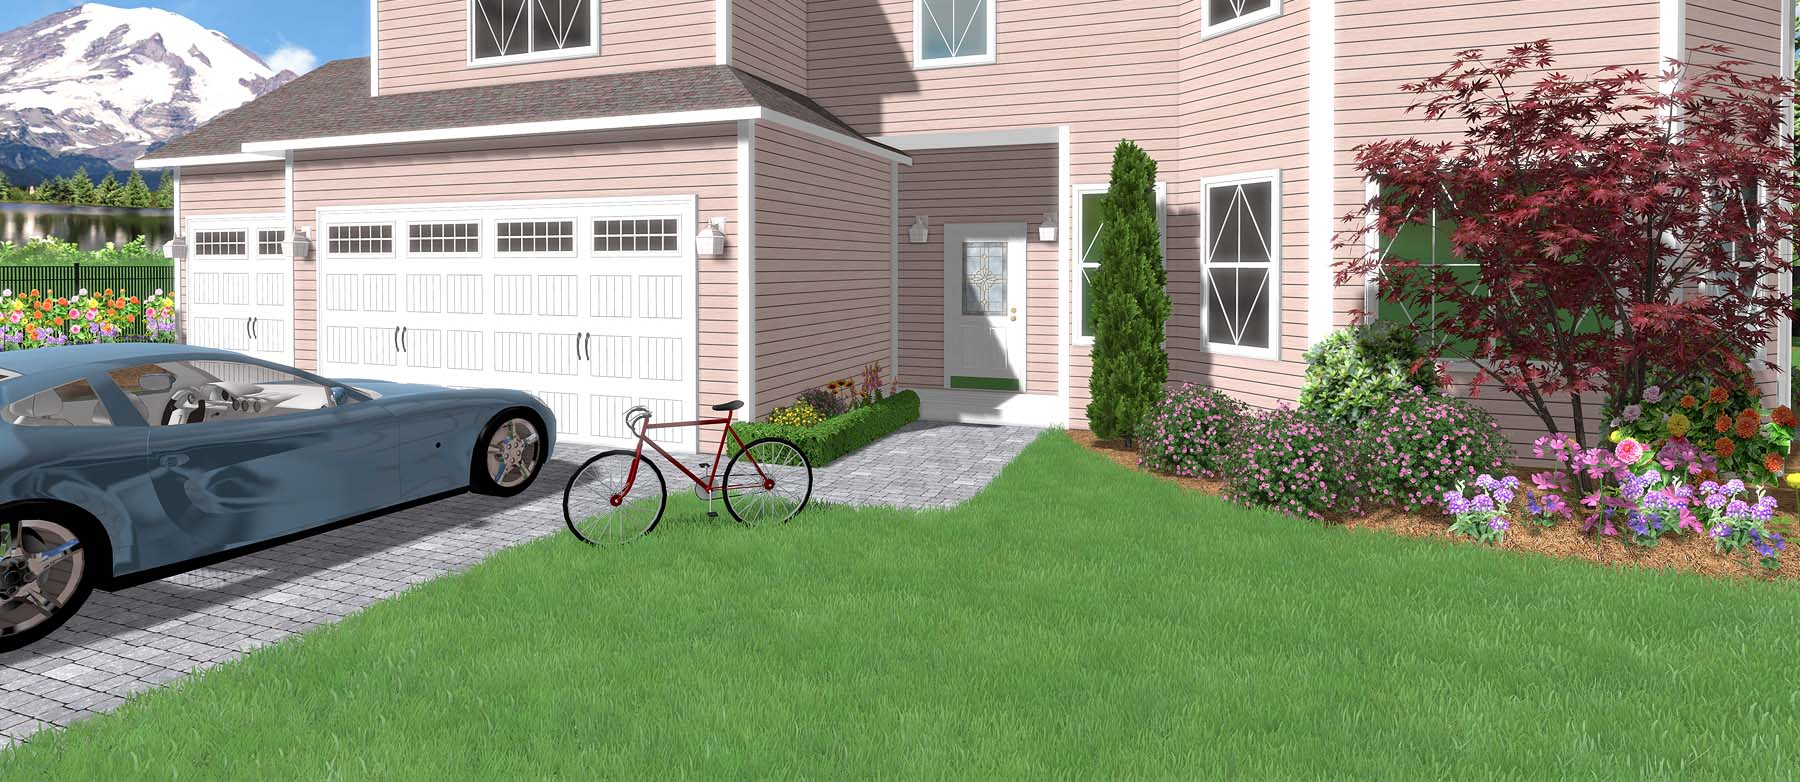 realtime landscaping architect system requirements